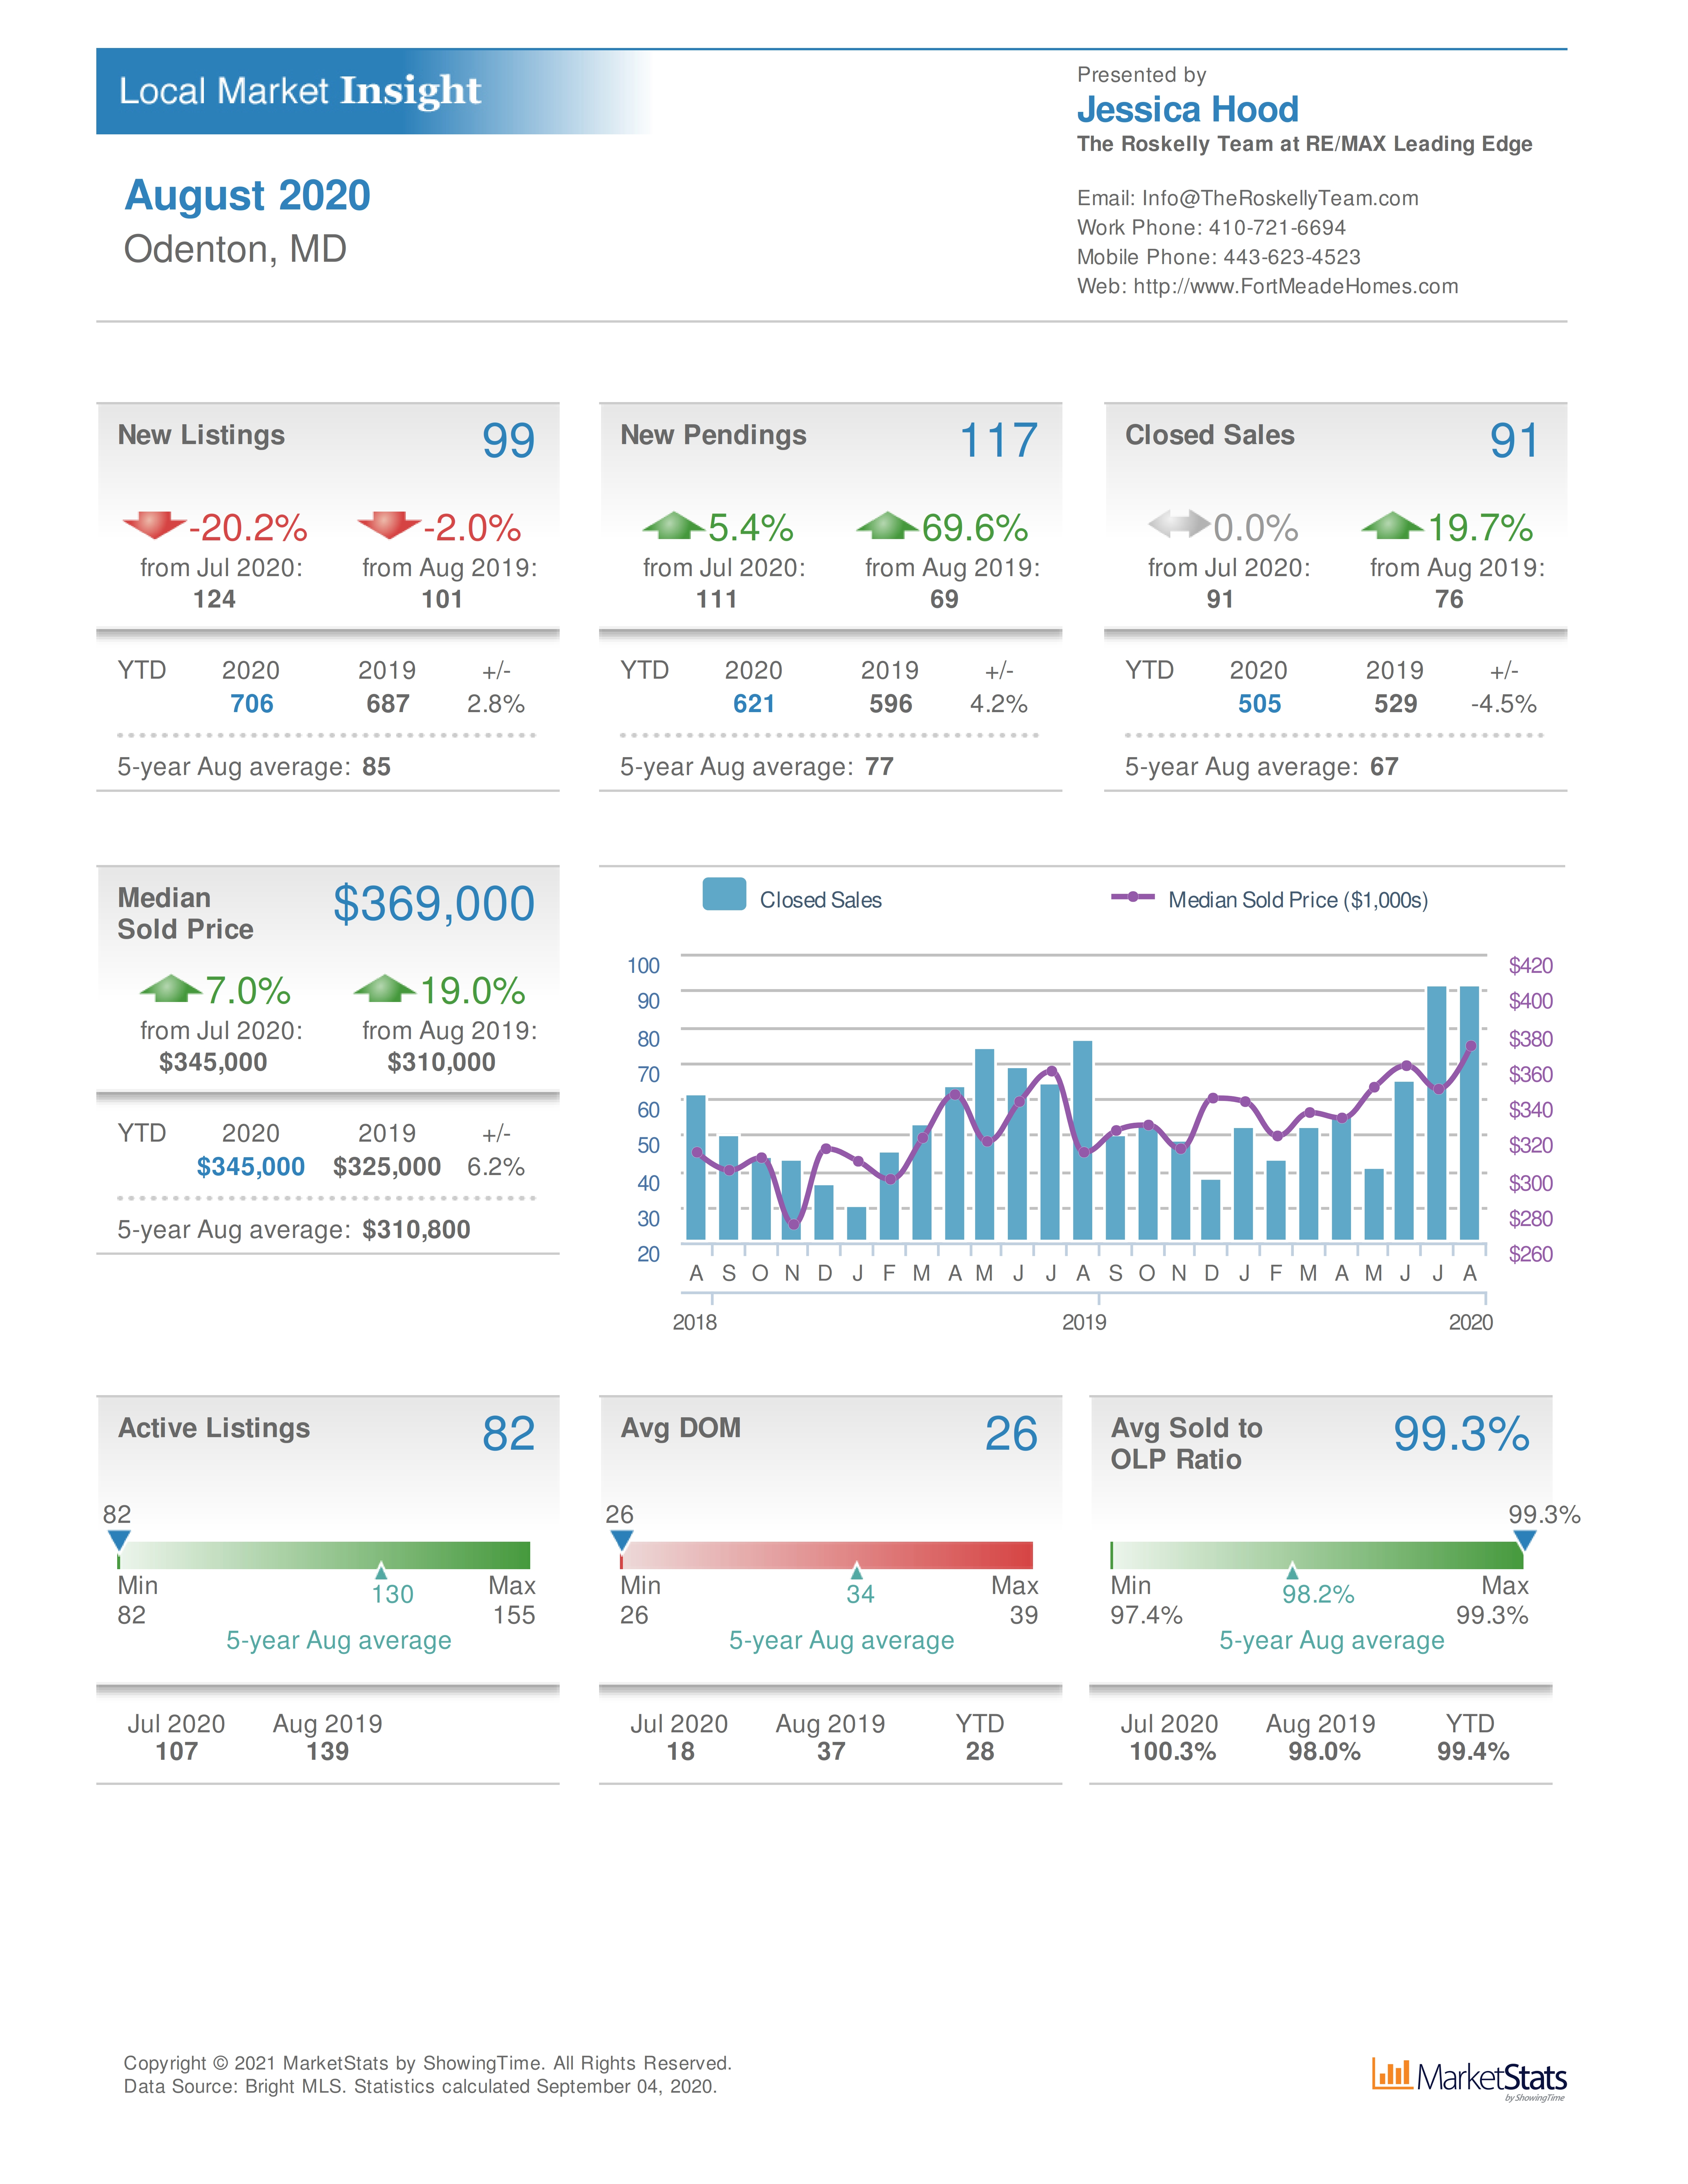 August 2020 Odenton MD home sales and property values